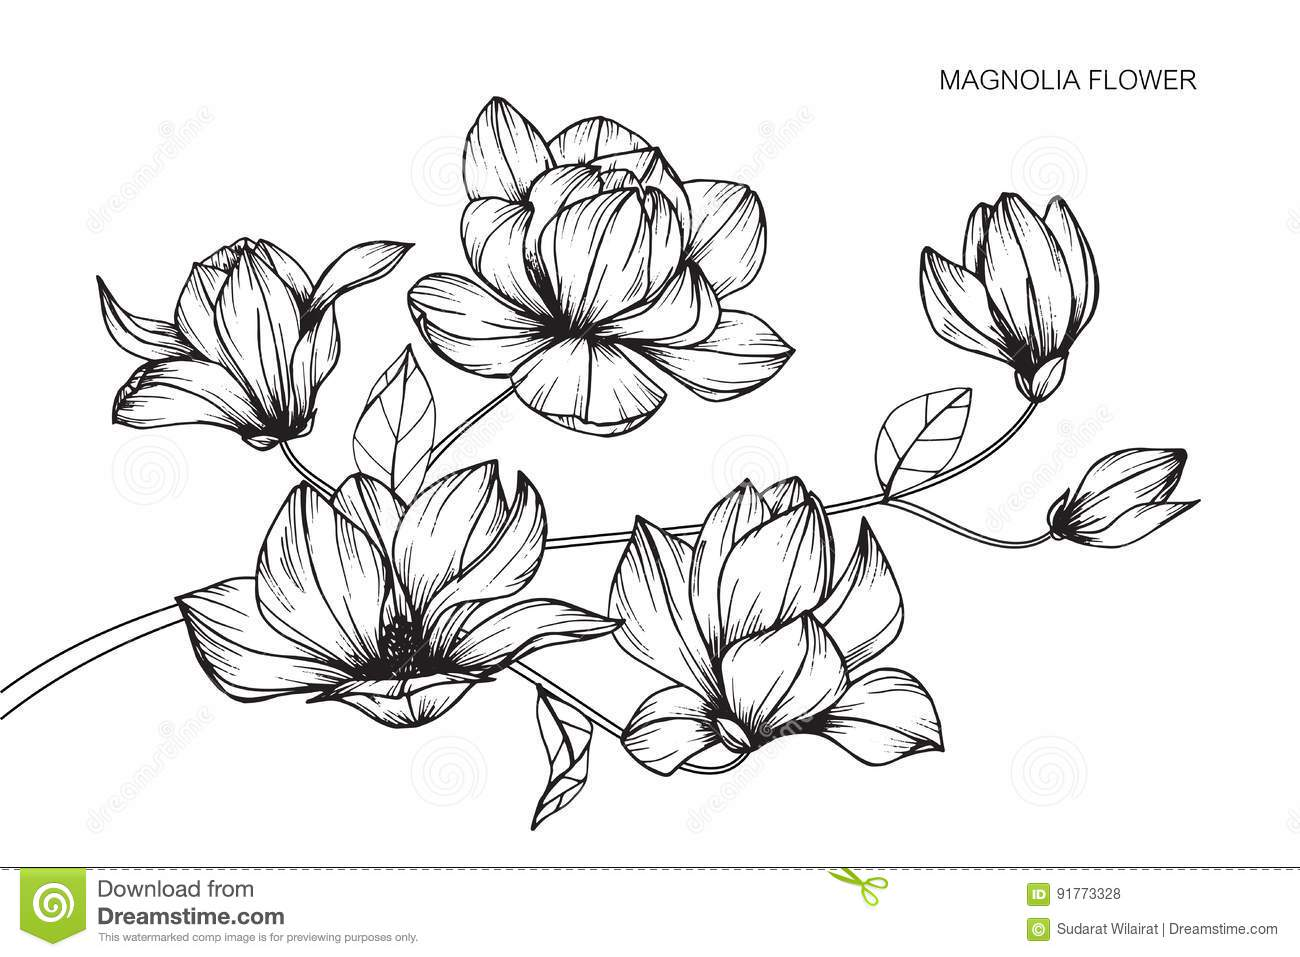 Magnolia Flowers Drawing And Sketch With Line Art Stock Illustration